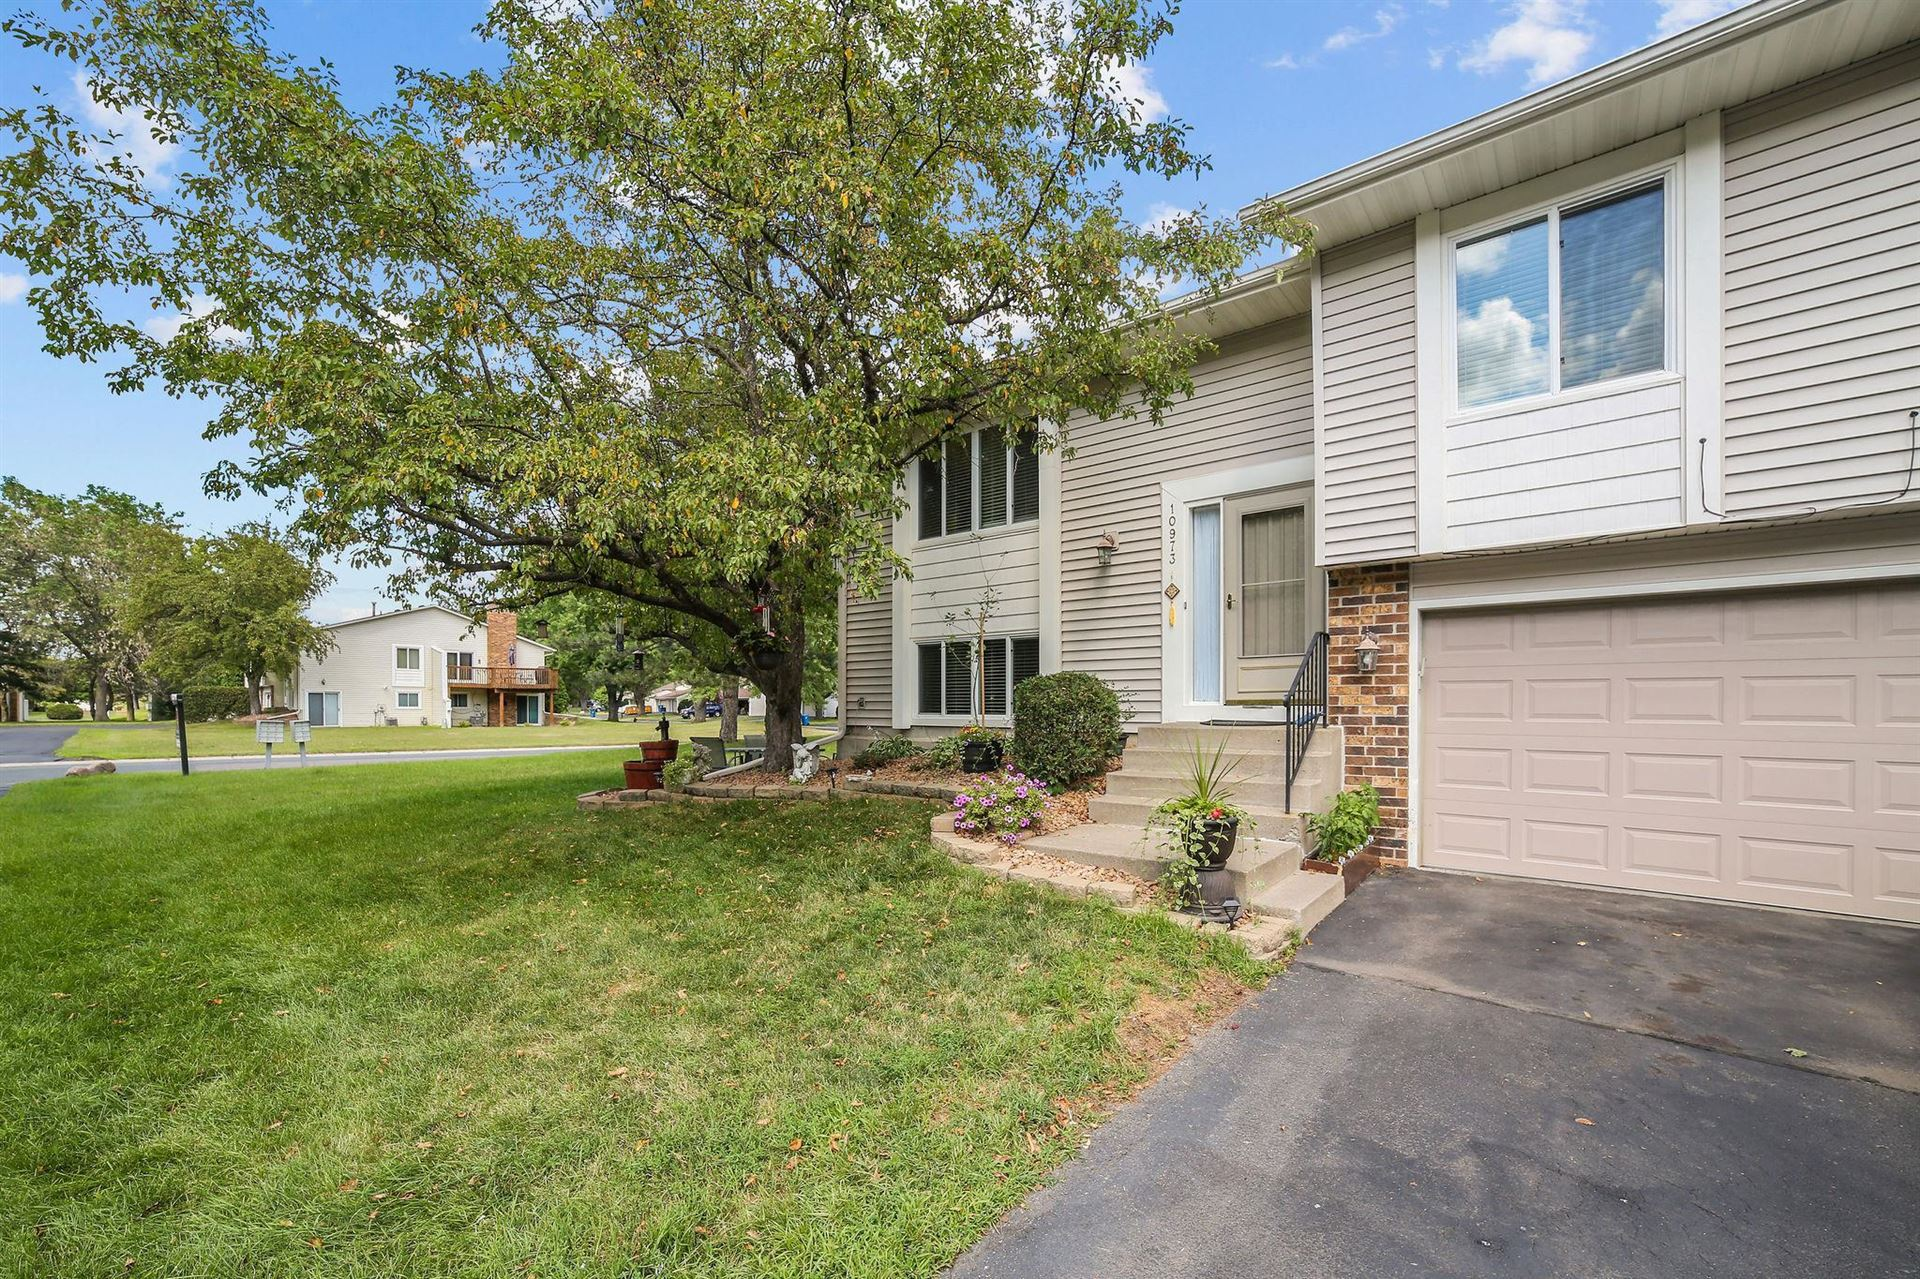 10973 104th Place N, Maple Grove, MN 55369 - MLS#: 5625288